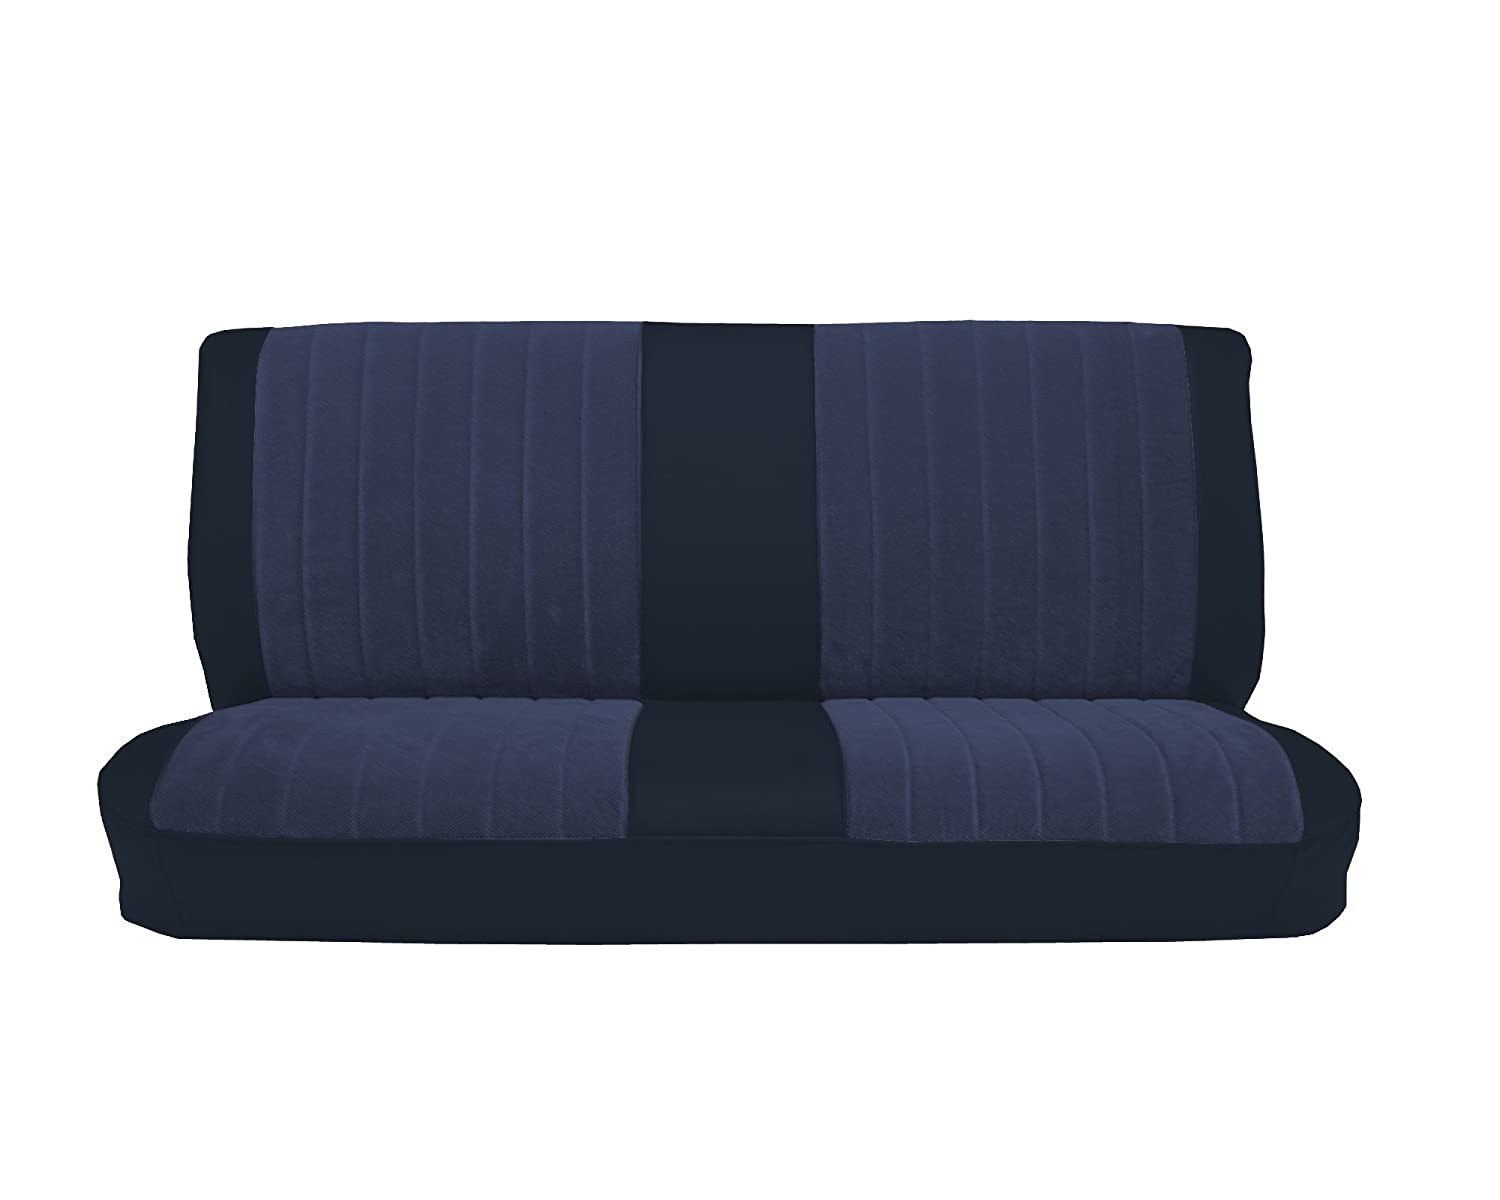 Acme U1001-015M Front Navy Blue Vinyl Bench Seat Upholstery with Blue Regal Velour Pleated Inserts